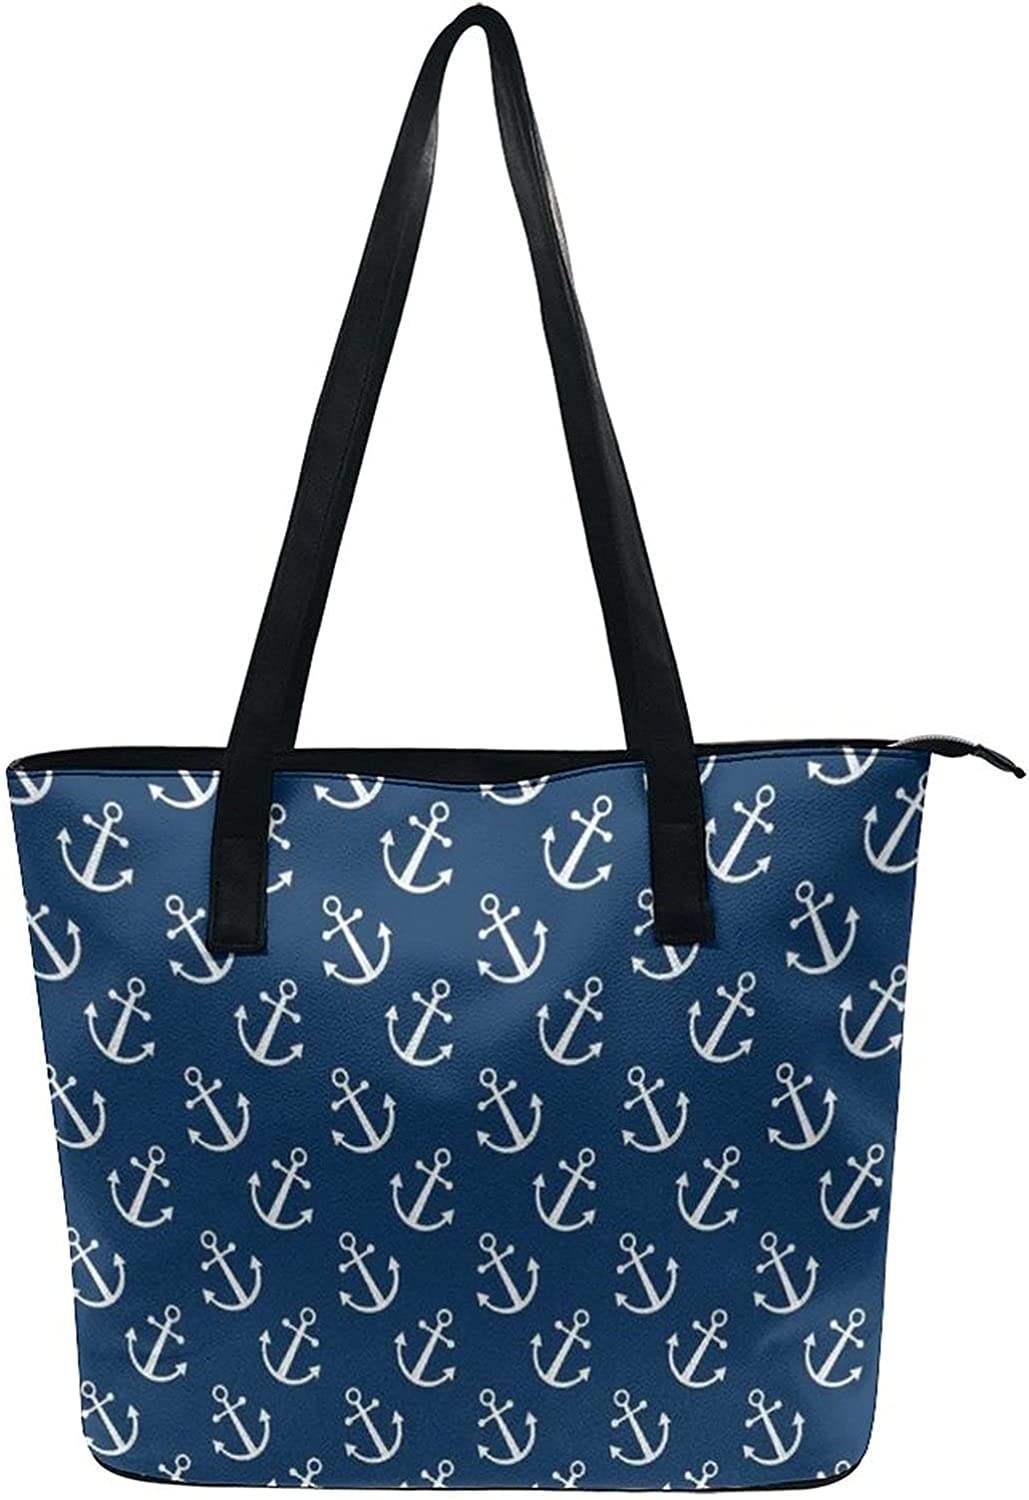 Beach Tote Bags Satchel Shoulder Bag Hand Free shipping on posting Cheap reviews Classic Lady For Women